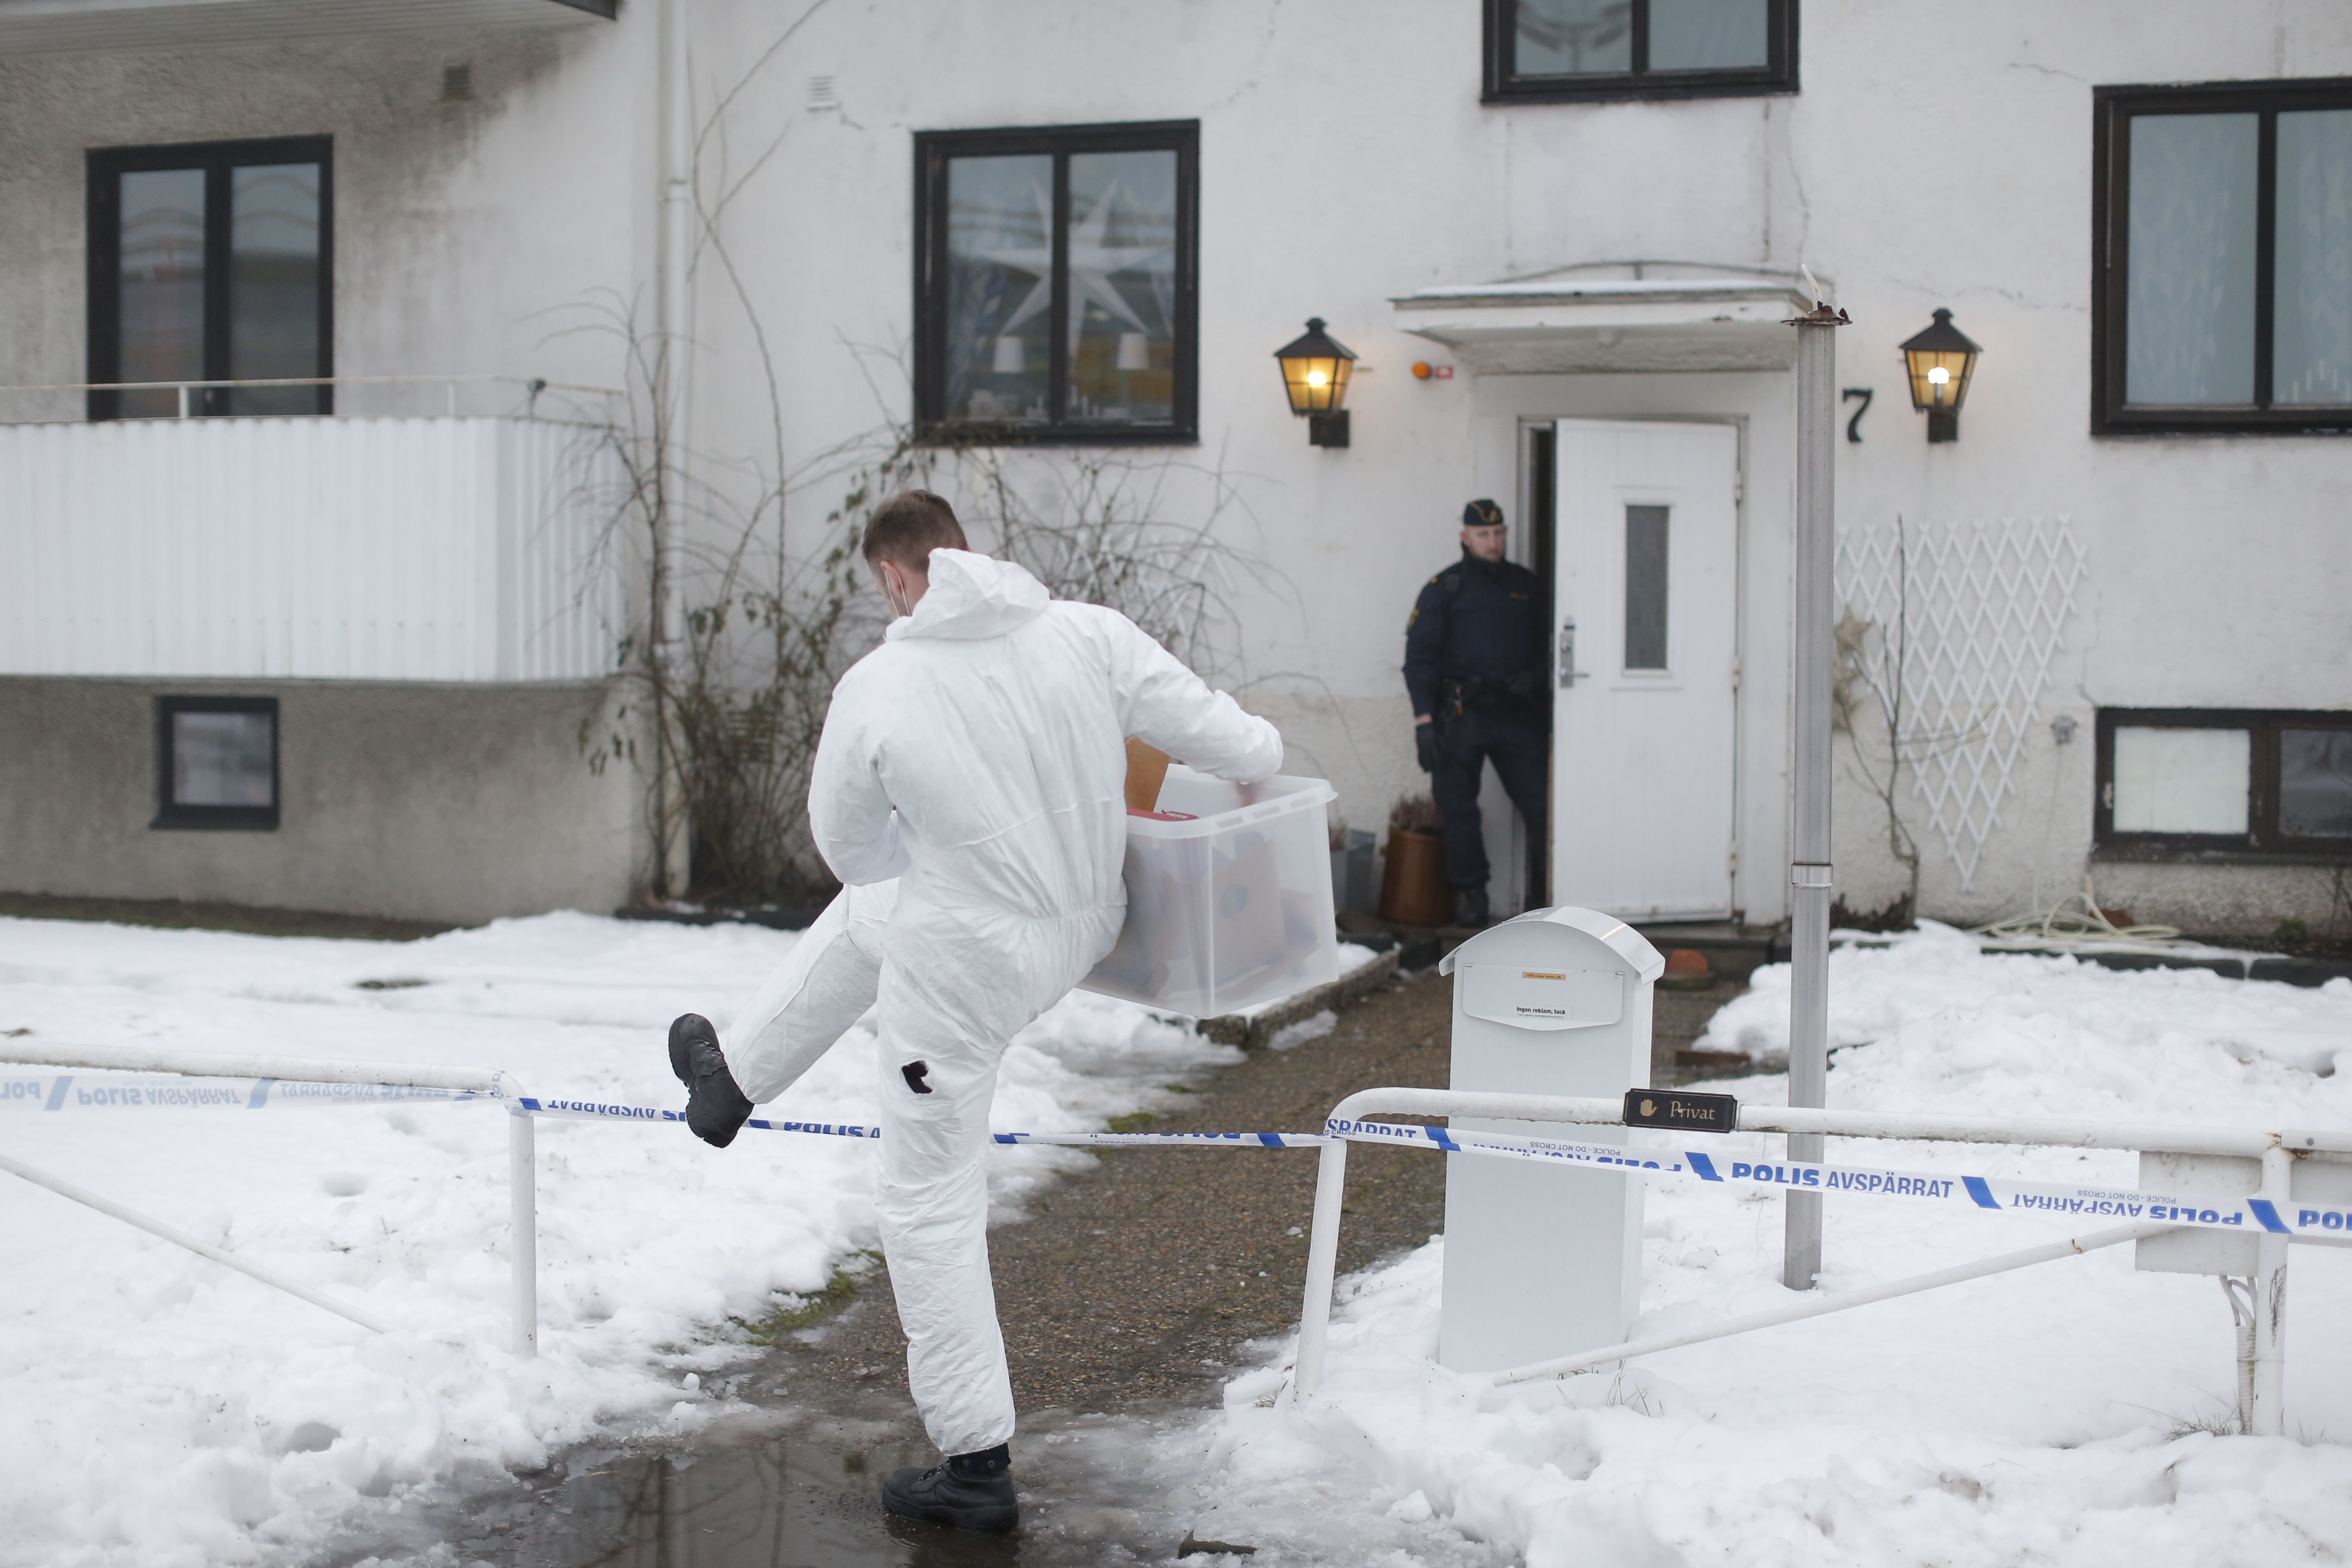 Police investigators are seen outside a home for juvenile asylum seekers in Molndal, south western Sweden on Jan. 25, 2016.